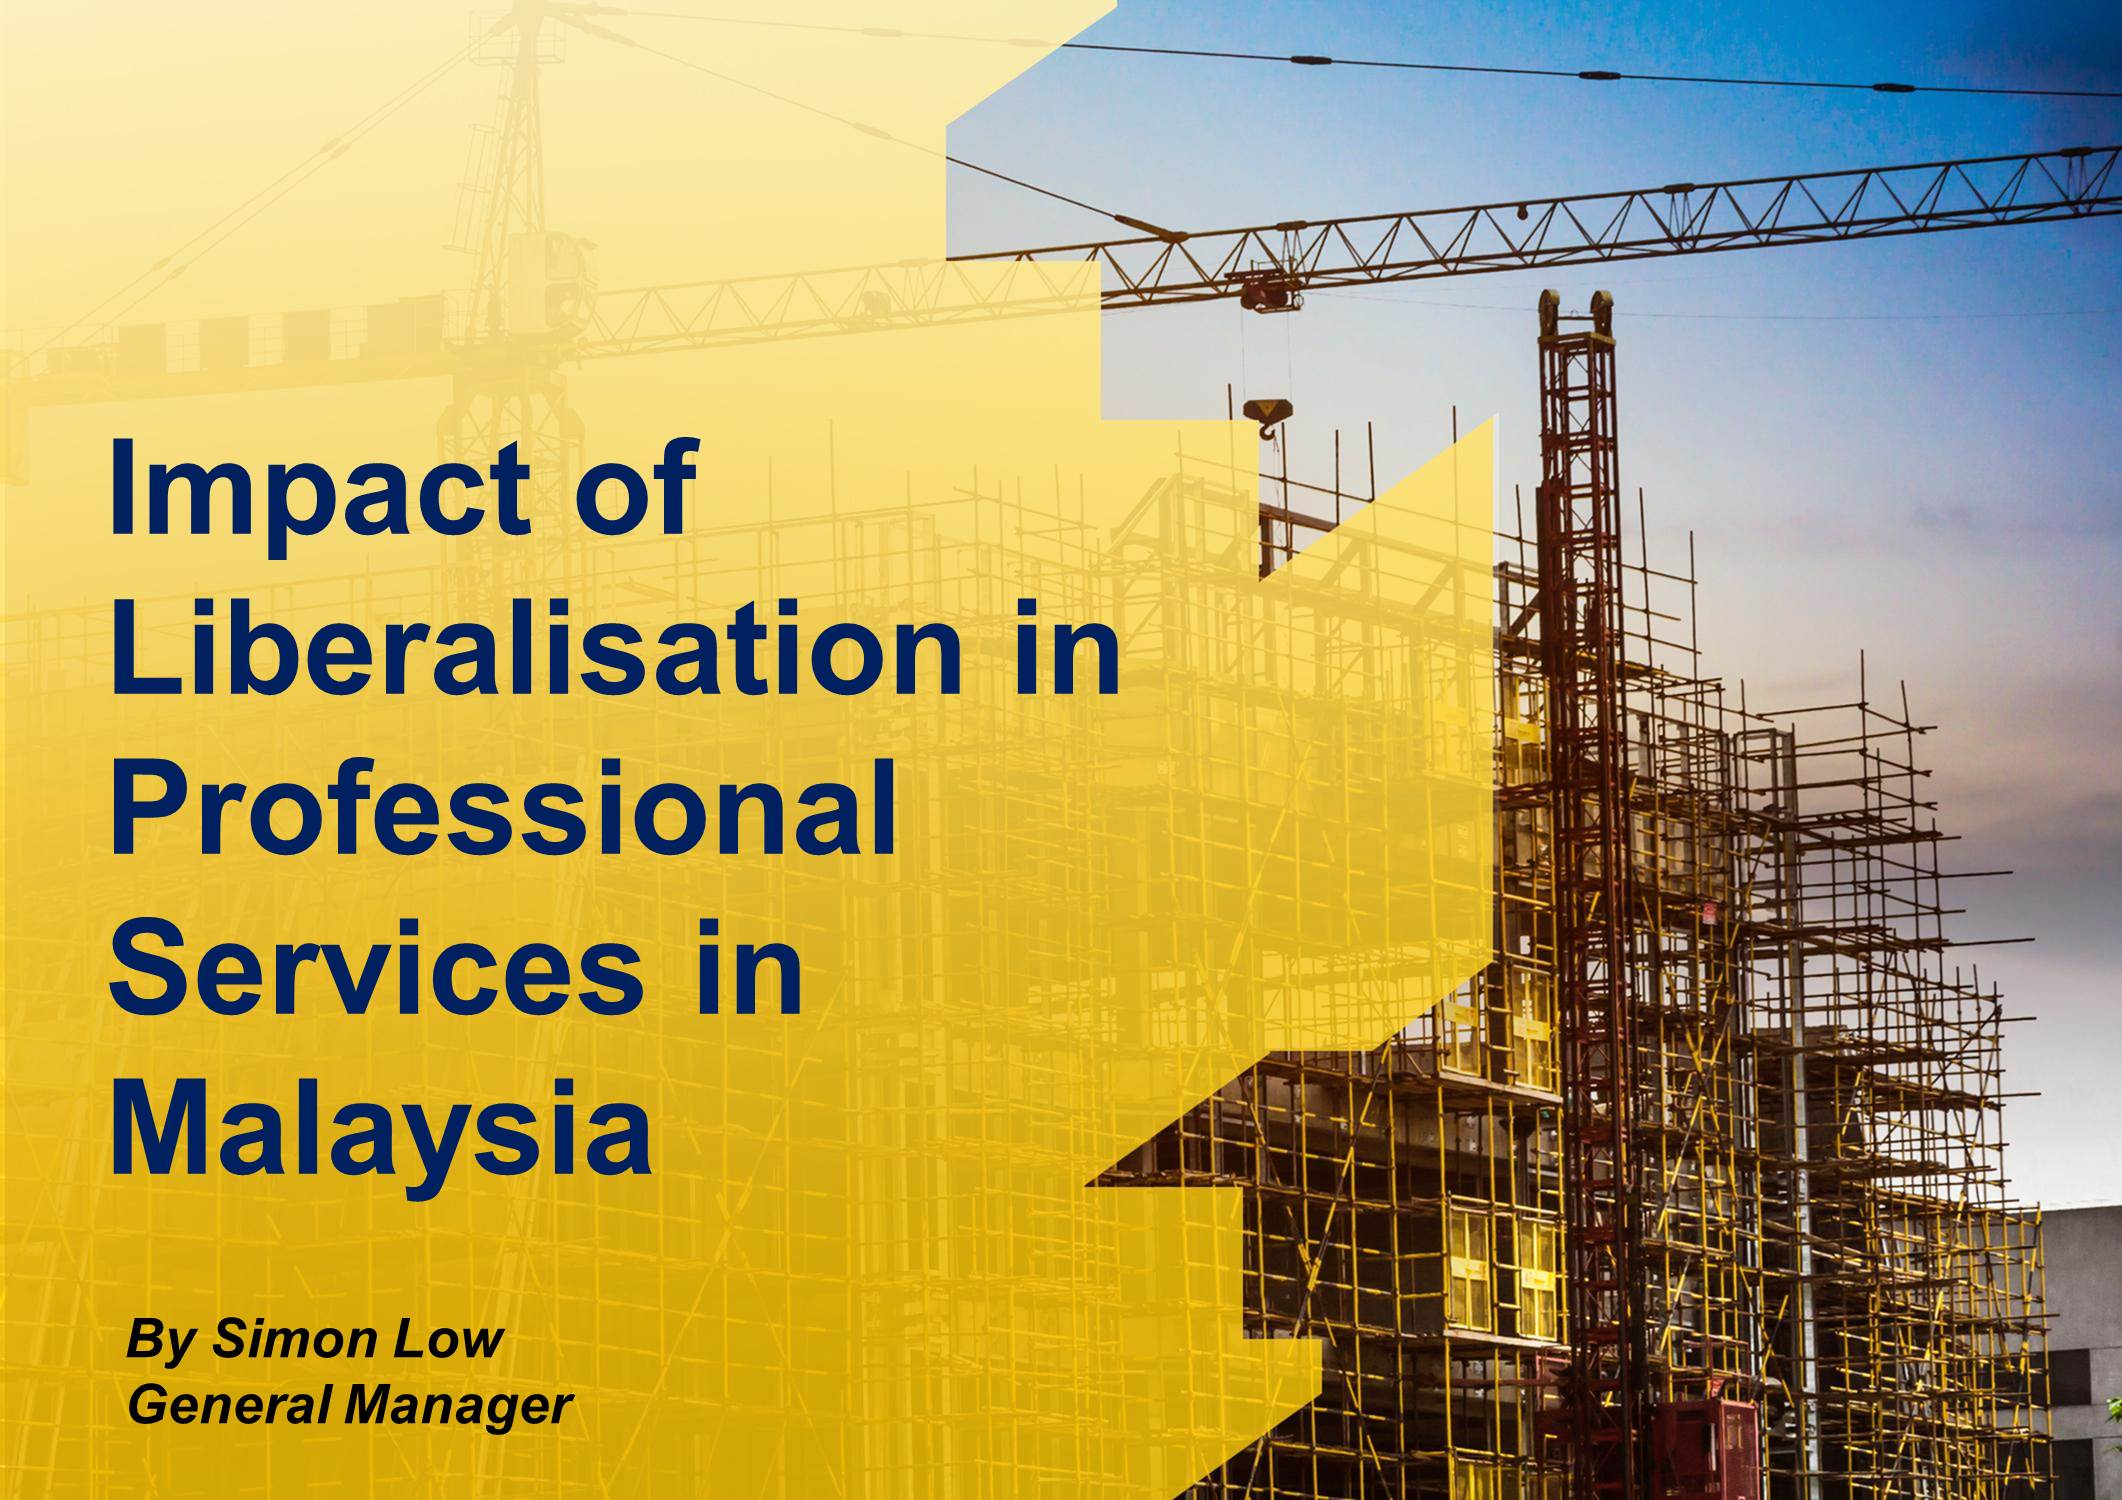 Impact of Liberalisation in Professional Services in Malaysia